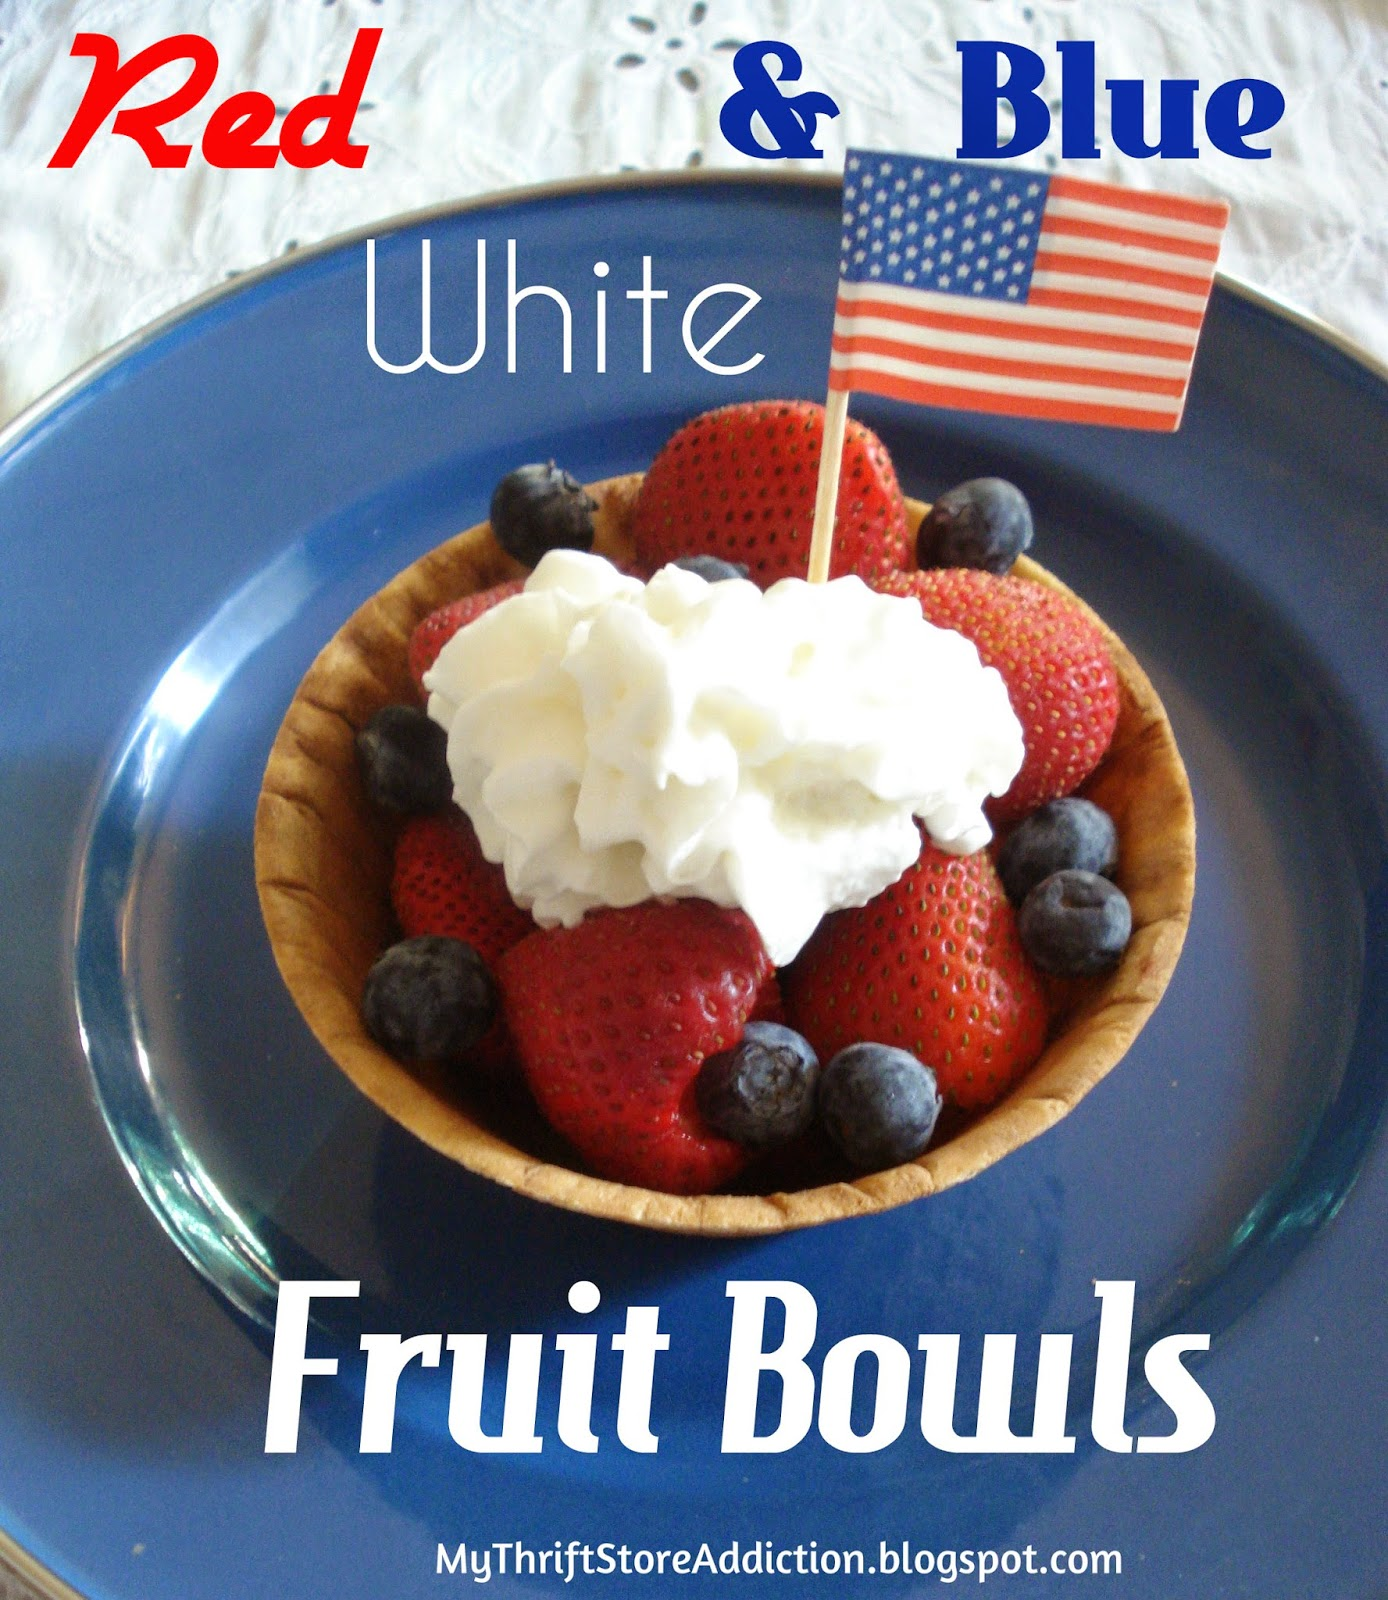 Red white and blue fruit bowls